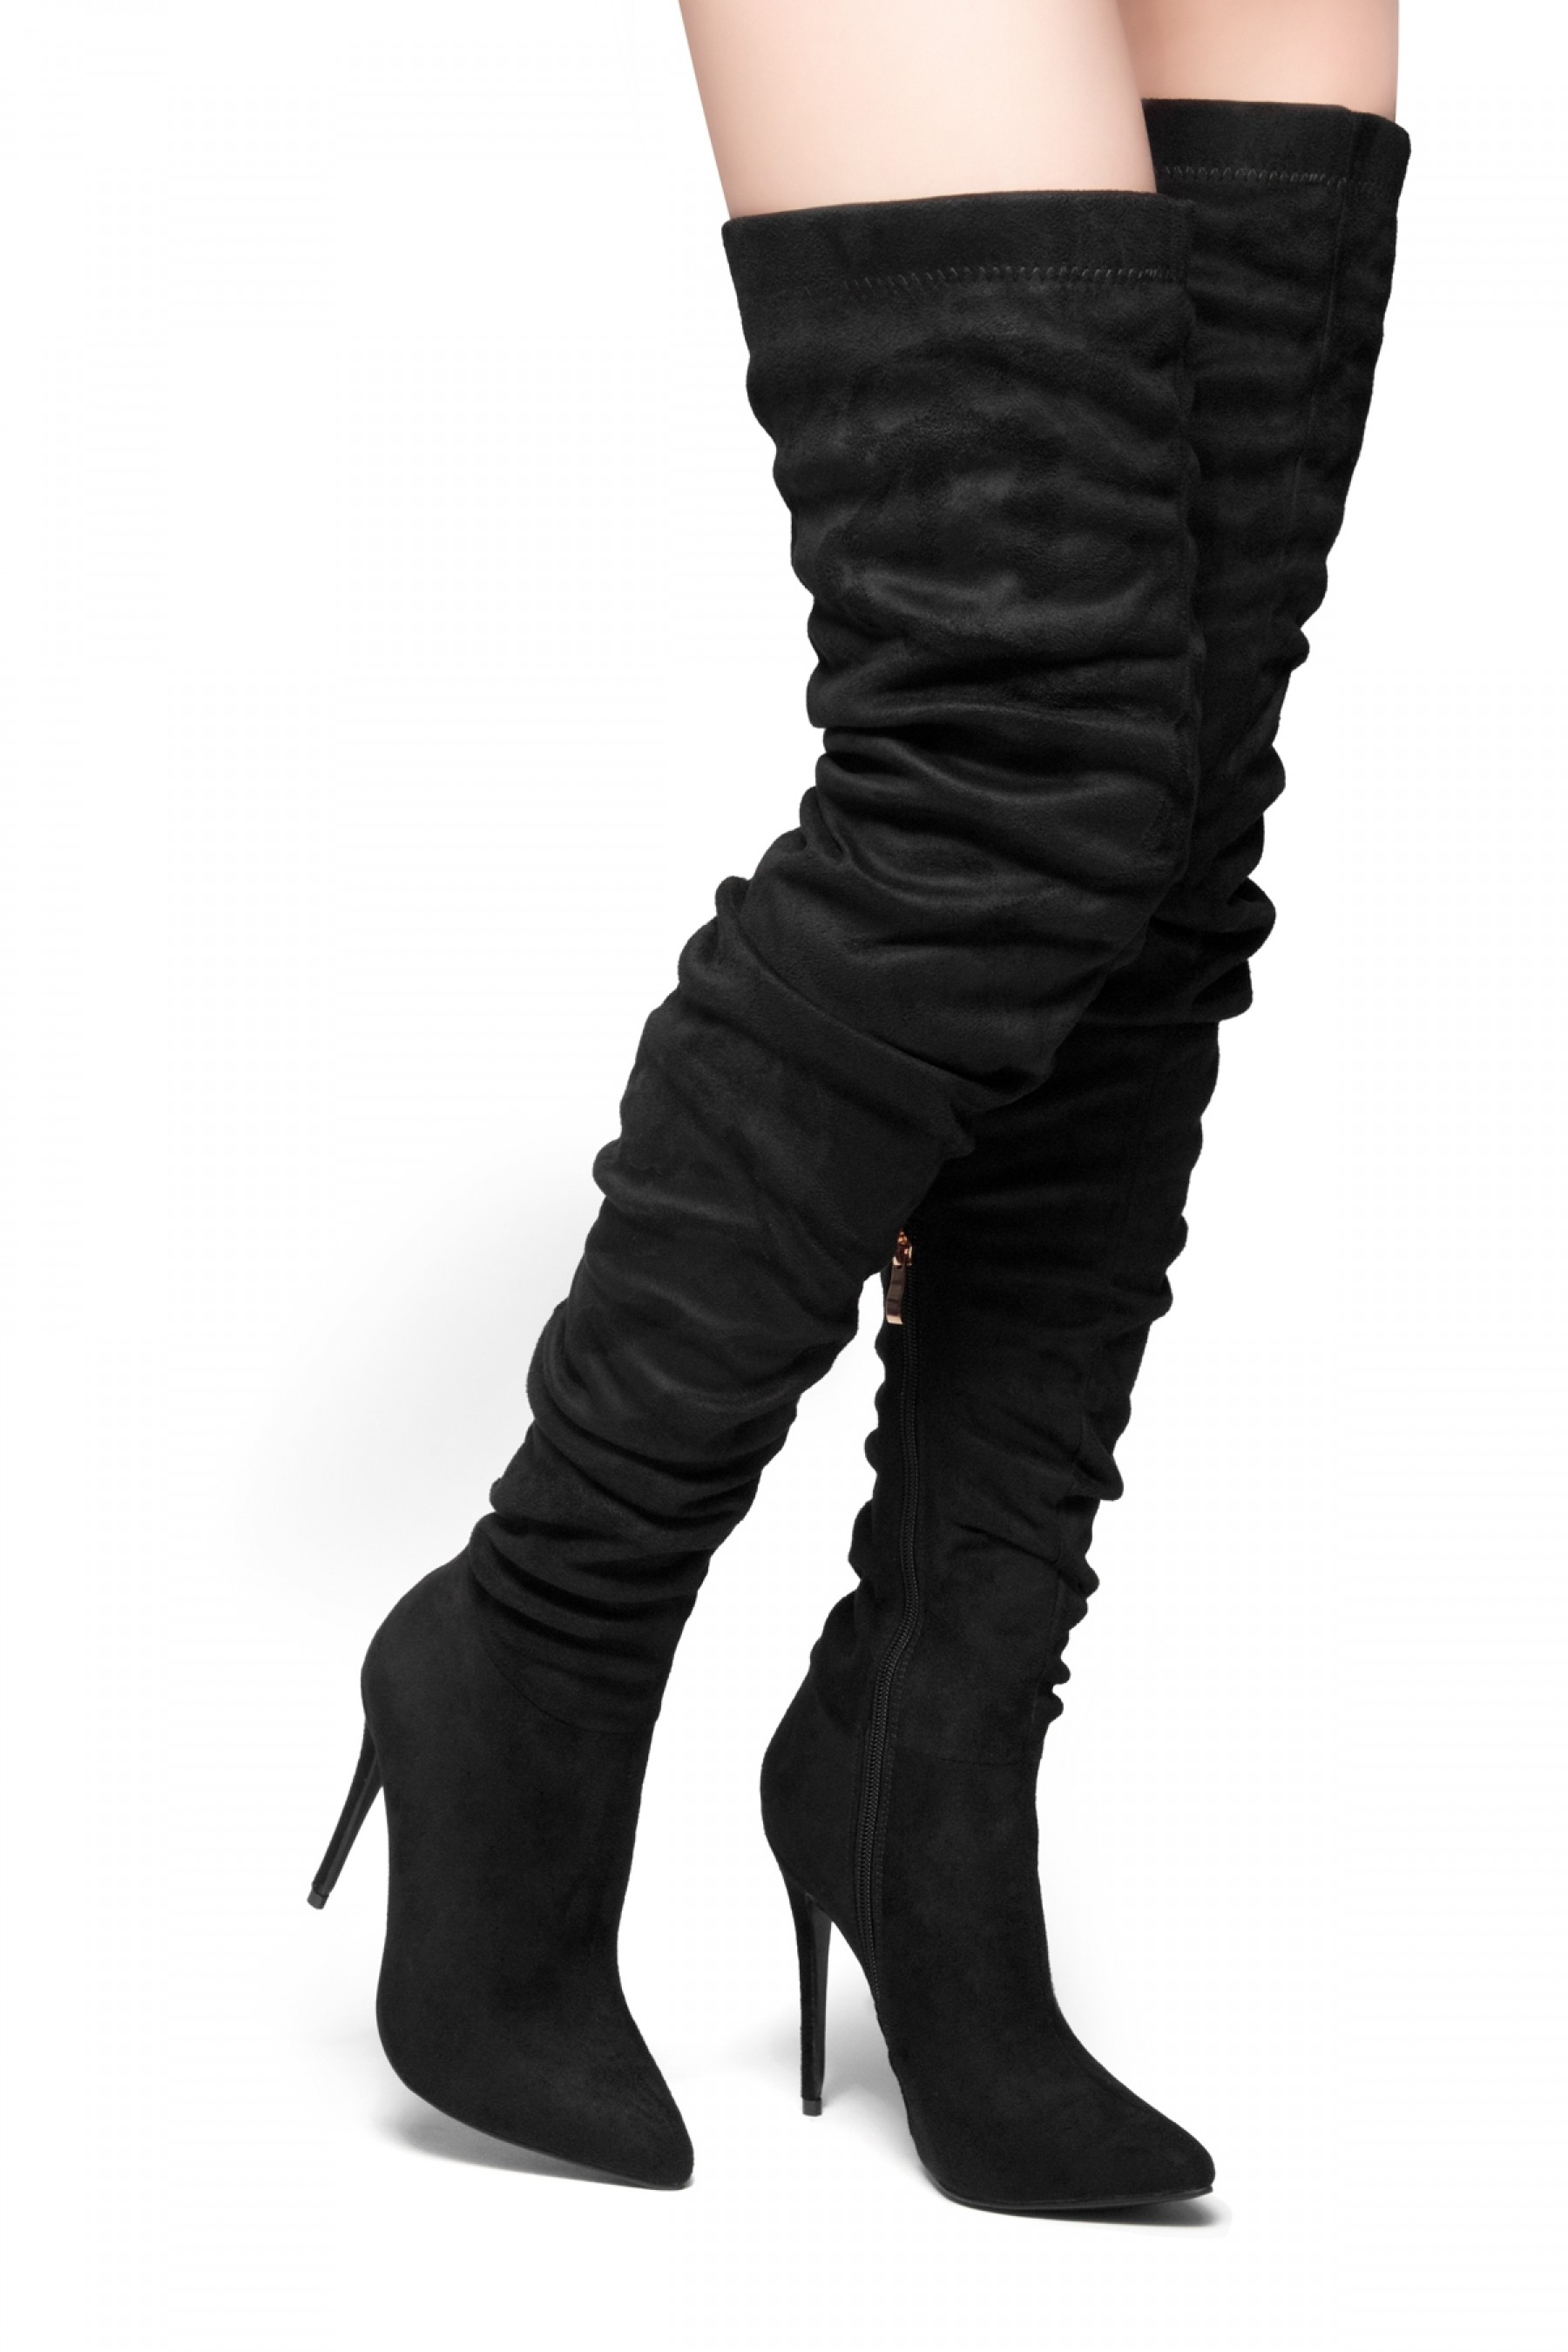 HerStyle-Deadly Lust-pointed toe, stiletto heel,slouchy Silhouette,thigh high construction (Black)